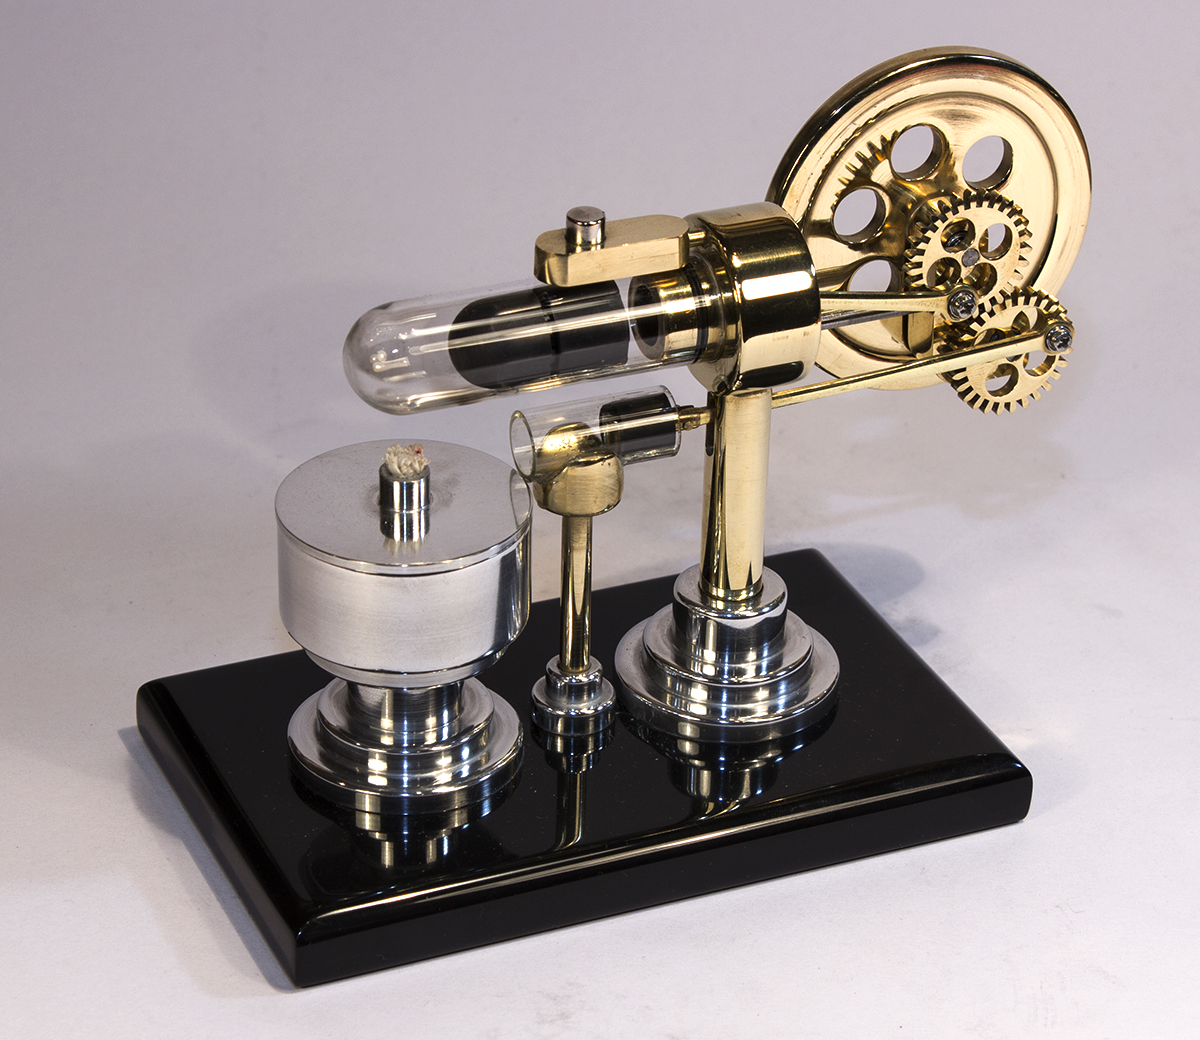 Engine (With images) Engineering, Stirling engine